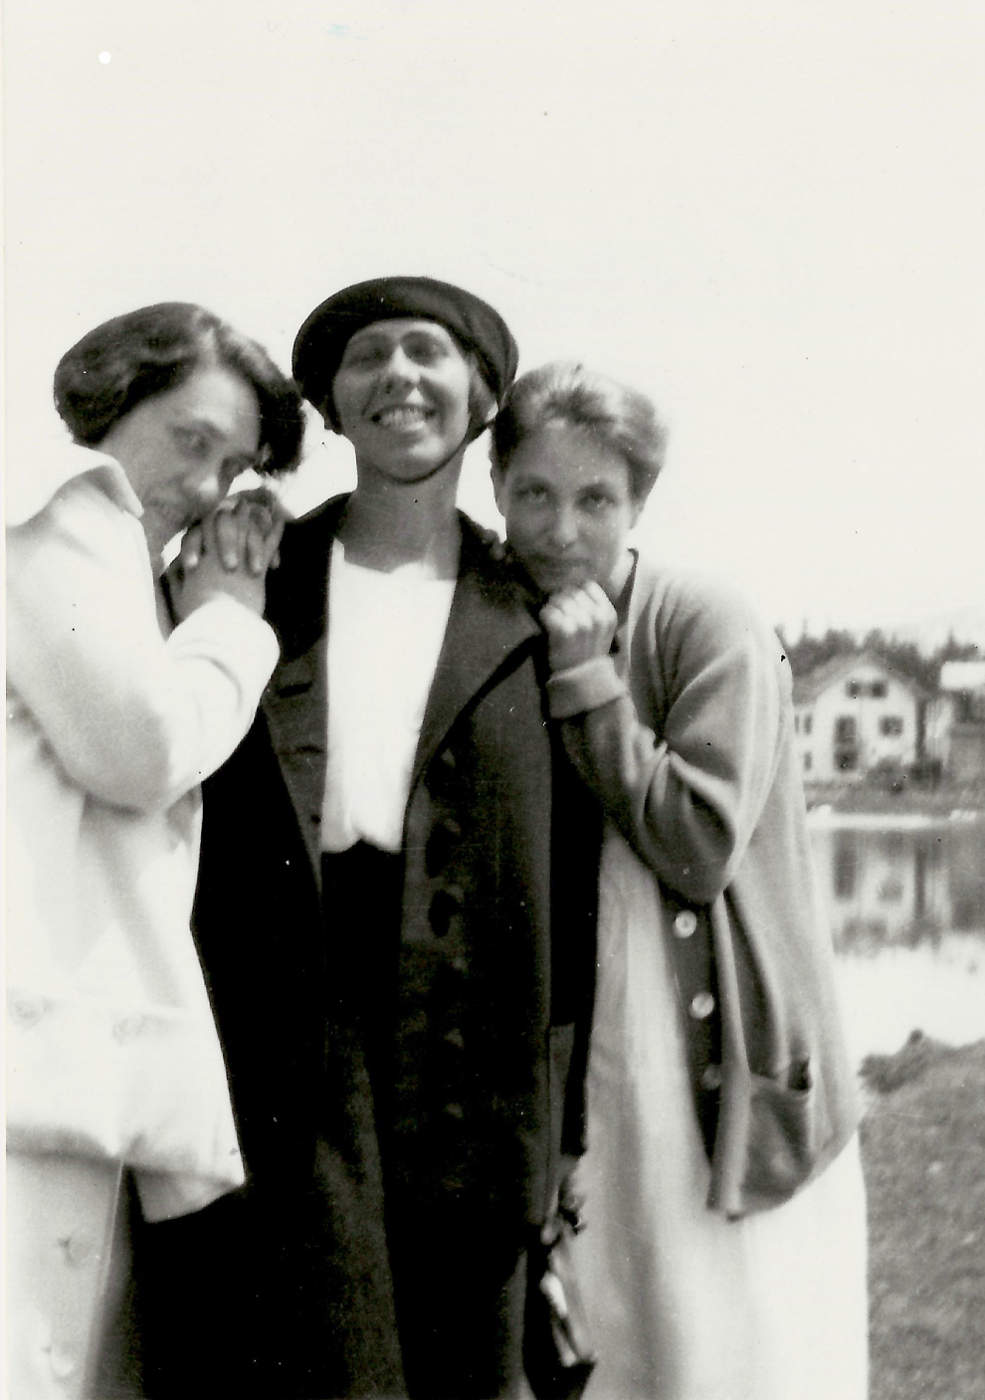 Sophie Taeuber-Arp with Mary Wigman and Berte Trümphy, Arosa 1918 | Photo: Photographer unknown – Archiv Stiftung Arp e. V., Berlin/Rolandswerth